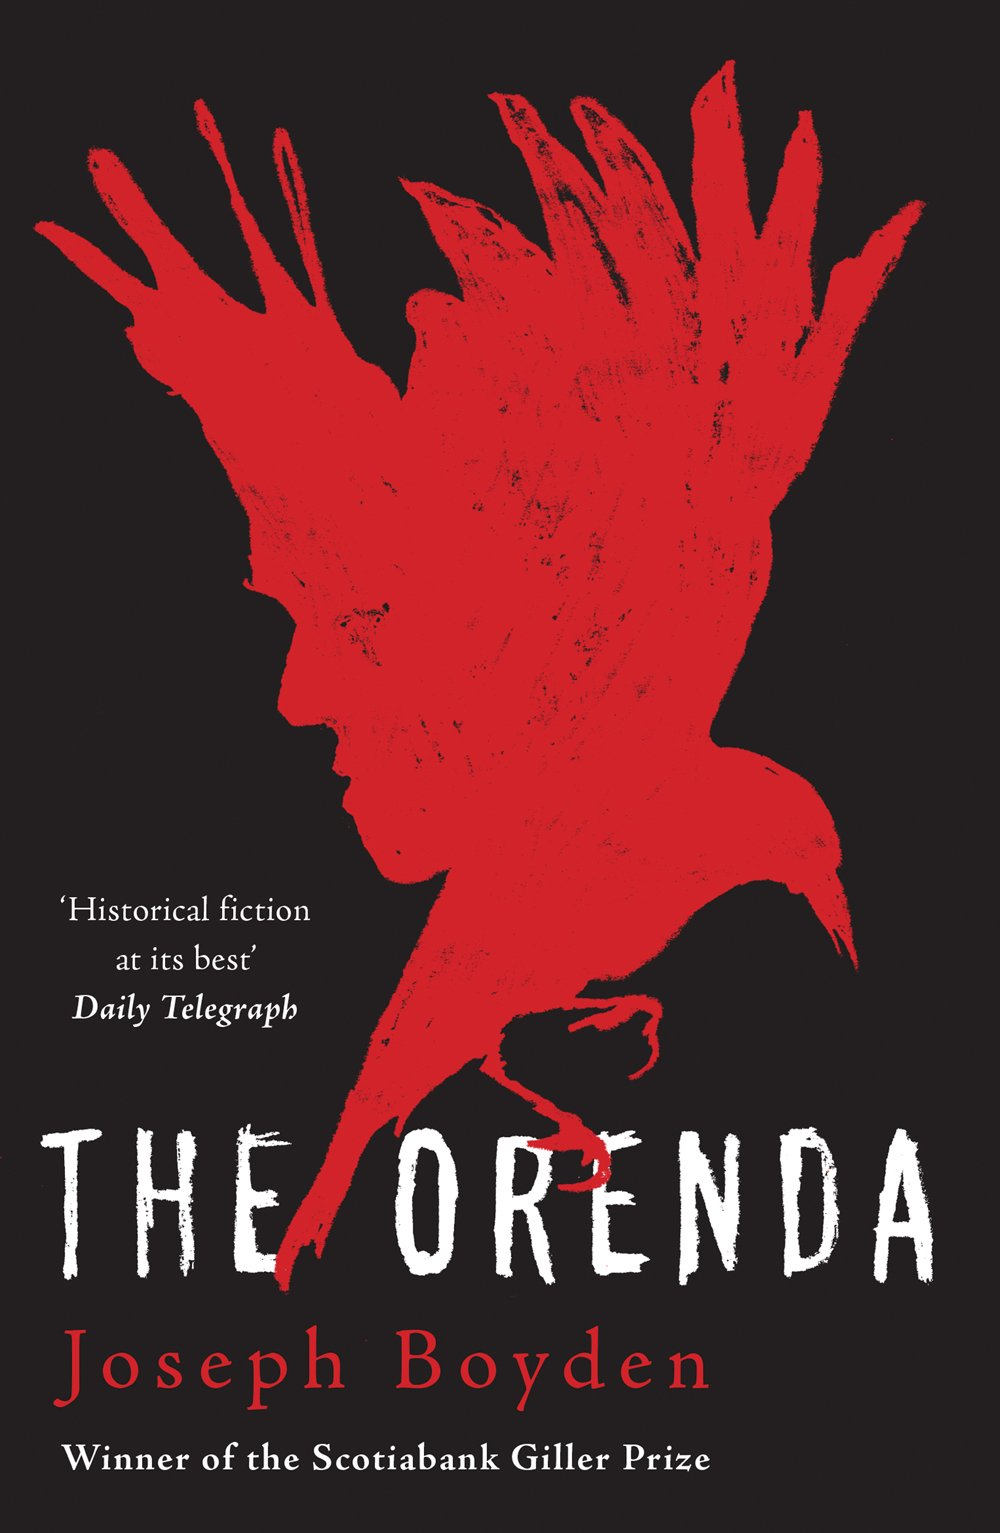 The Orenda by Joseph Boyden cover photo